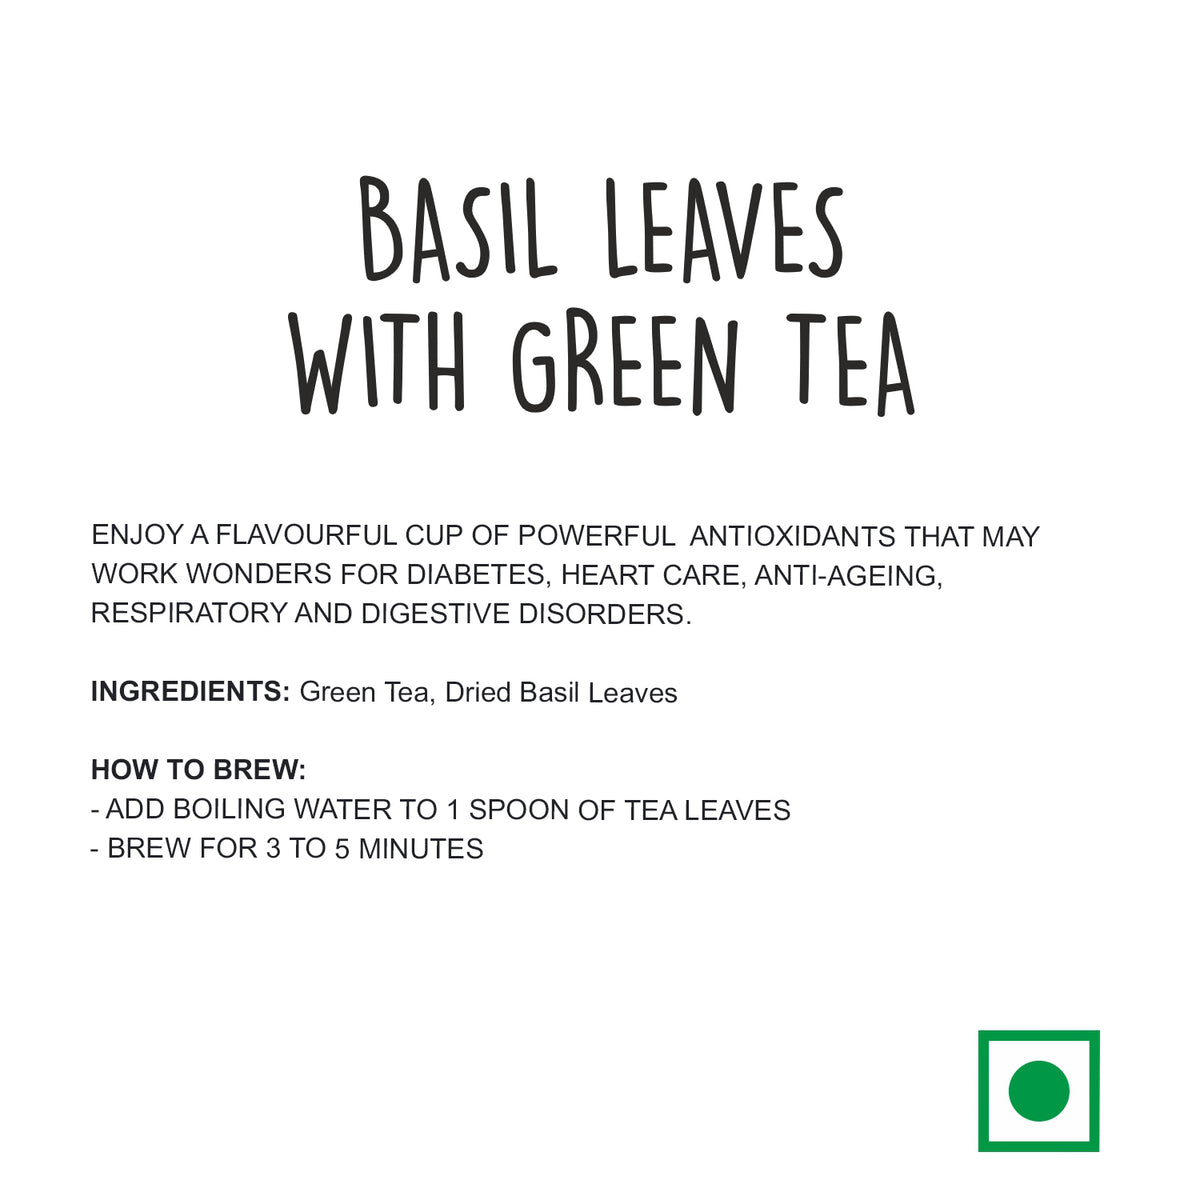 Basil Leaves with Green Tea